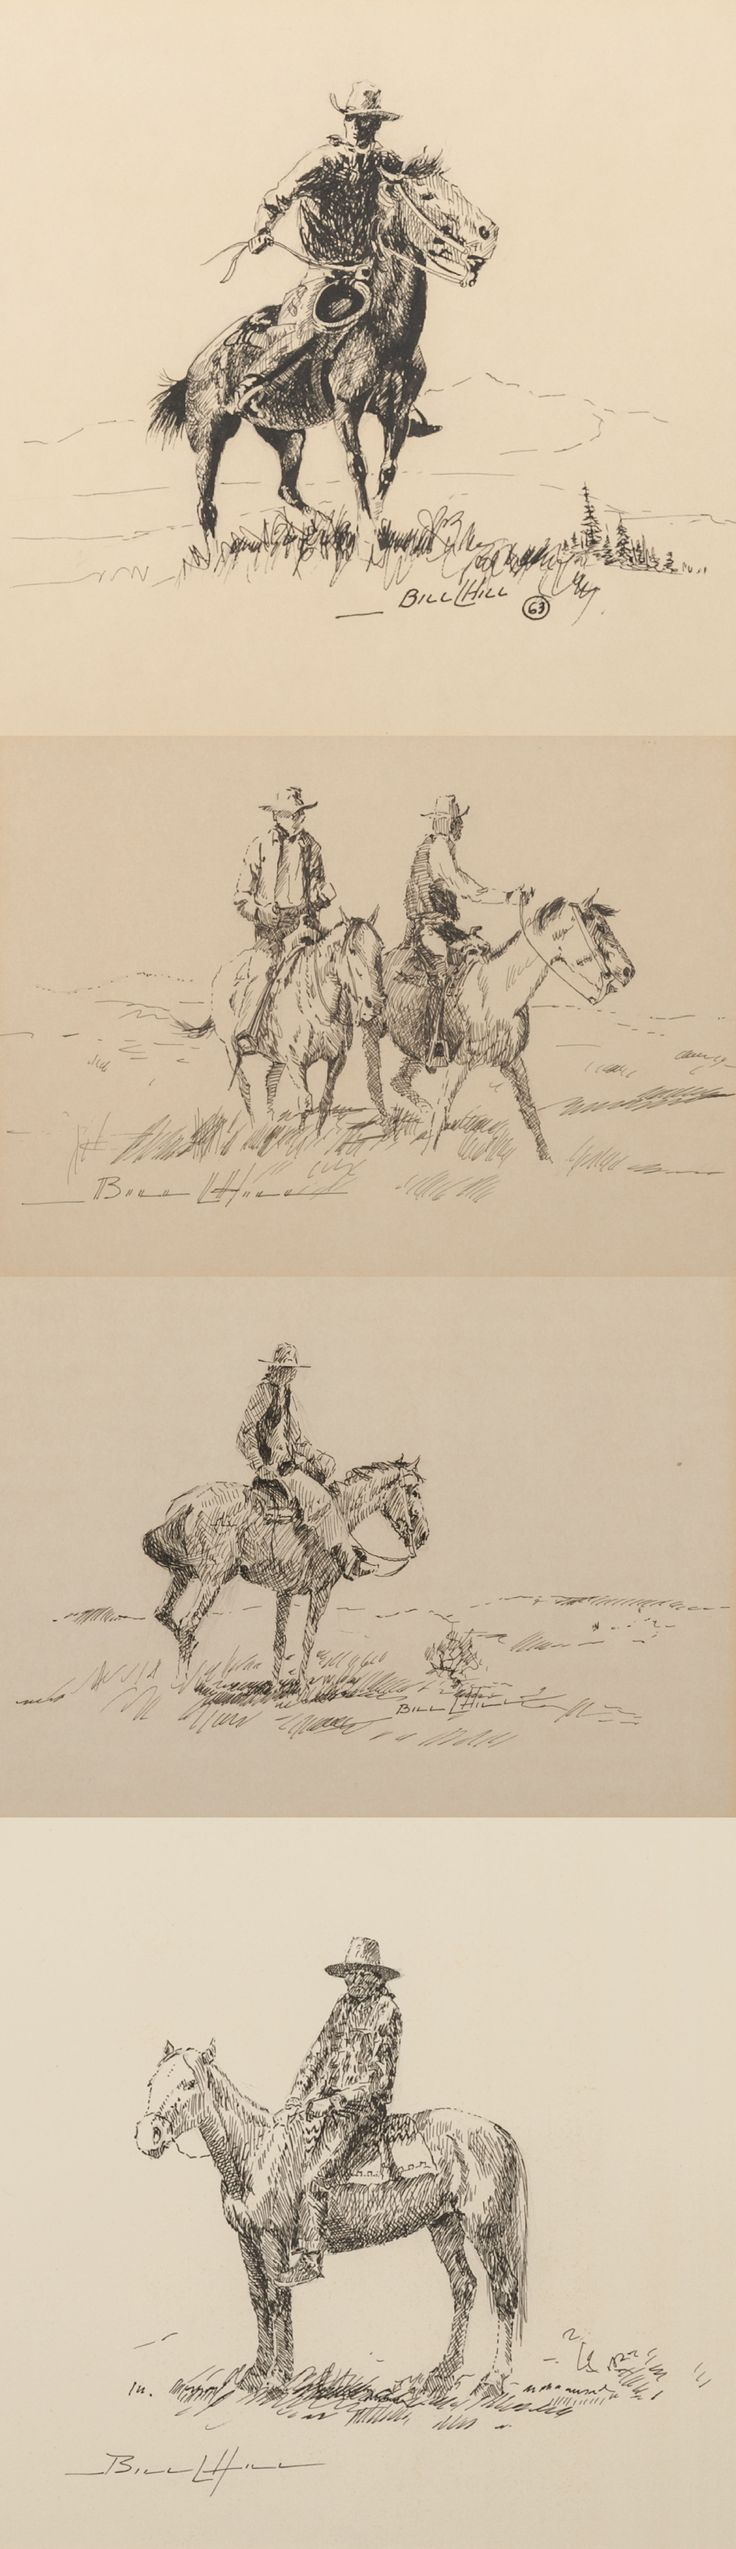 """William Hill (1922 - 2009) pen and ink drawings of western scenes by William Hill. Sizes range from 6"""" x 8"""" to 7 1/2"""" x 10"""". Each signed BILL L HILL, and all framed."""